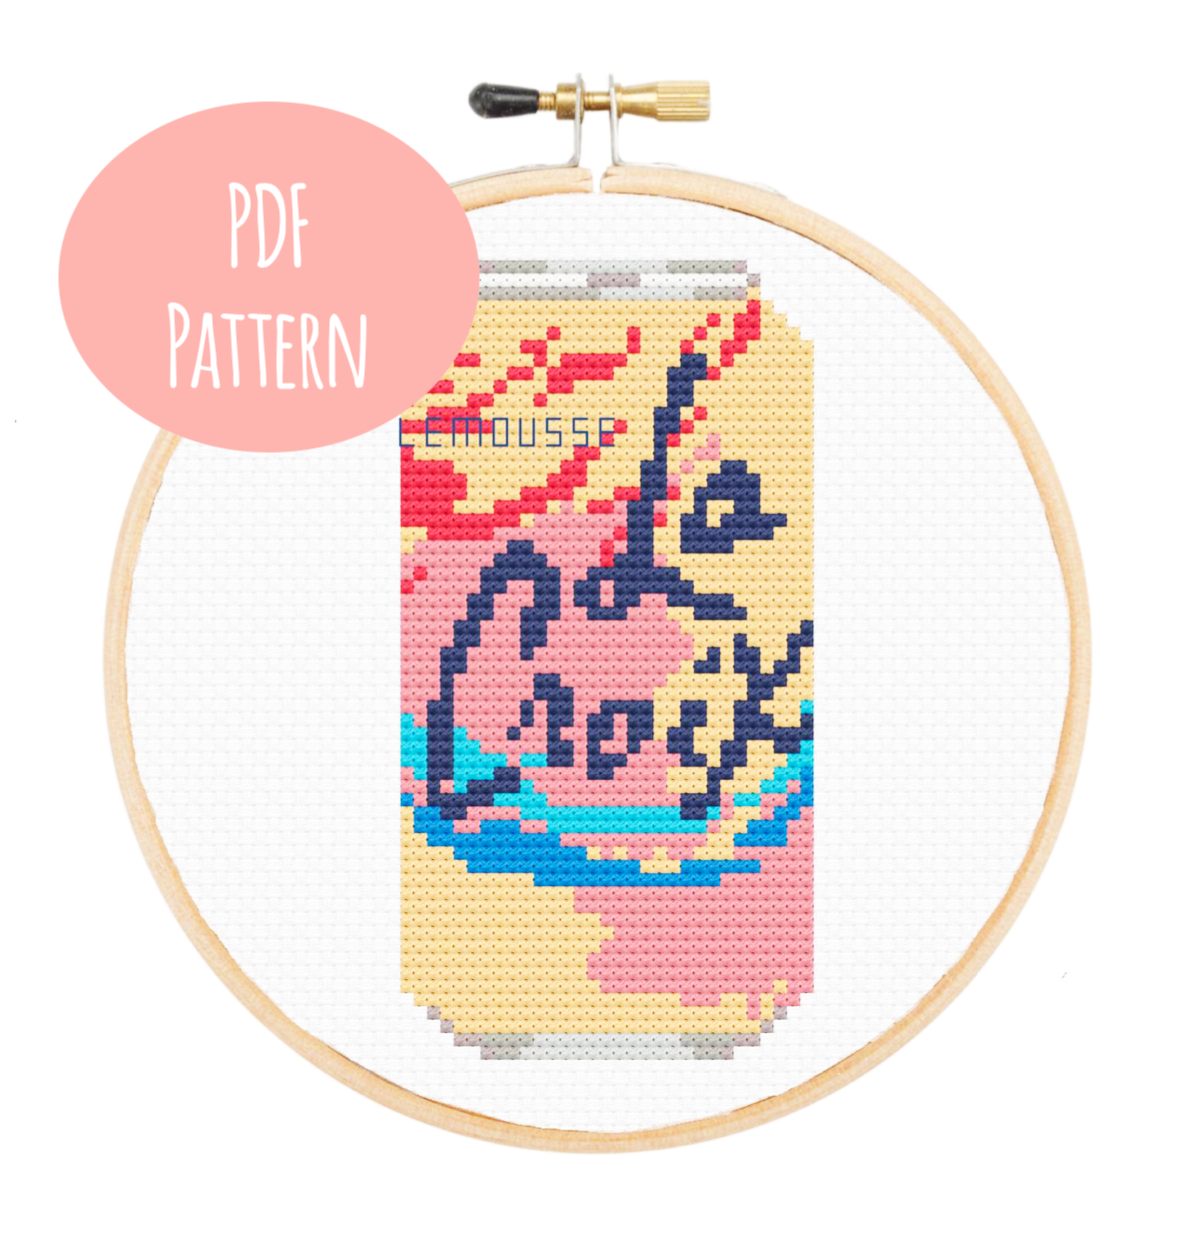 La Croix Cross Stitch - PDF Instructions